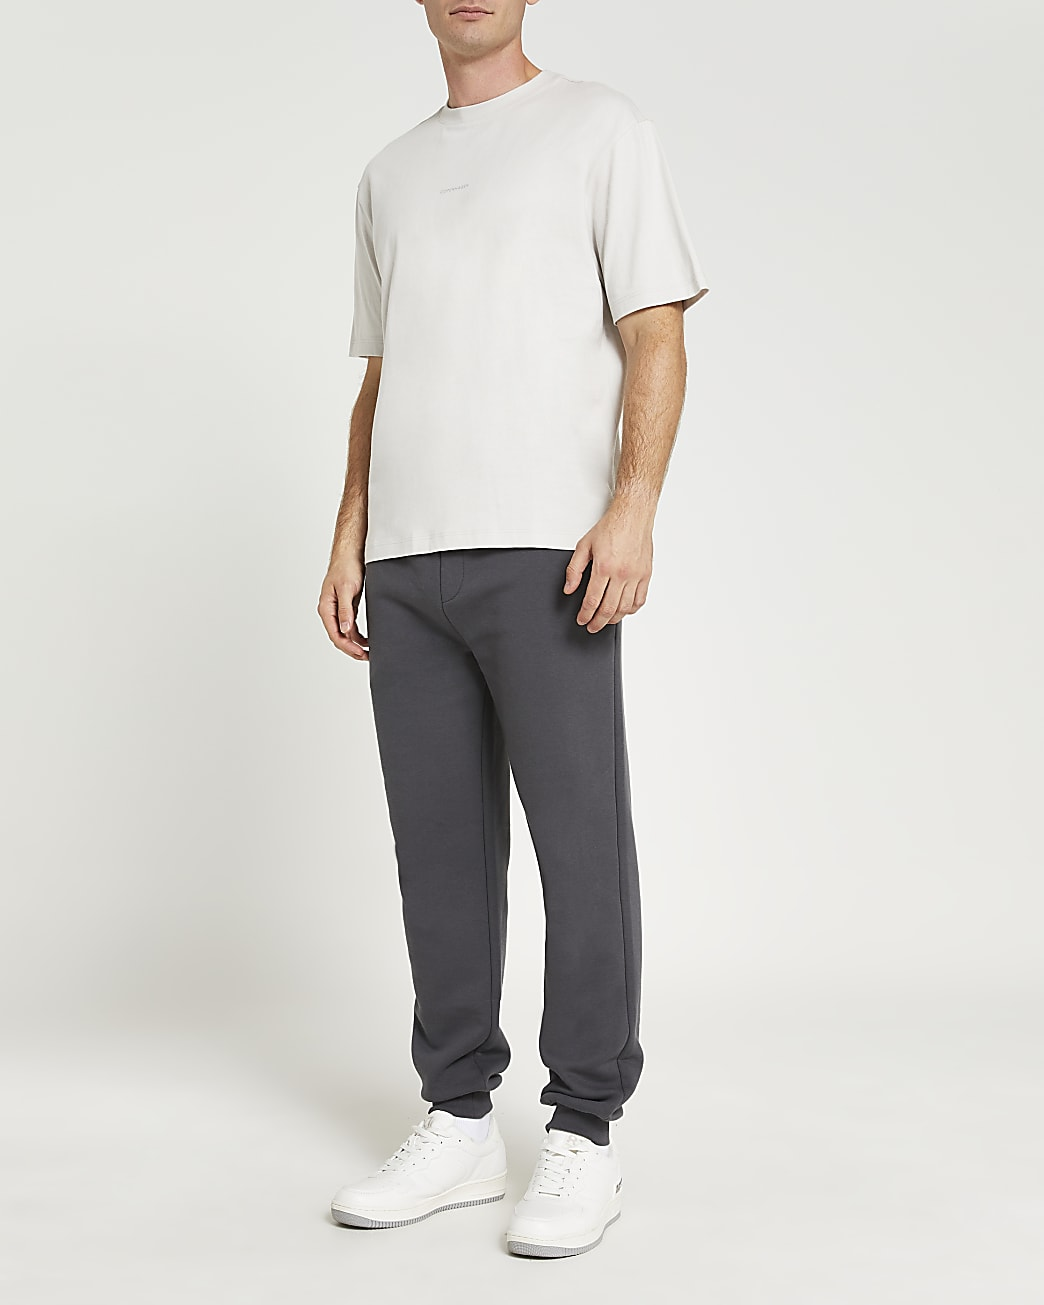 Grey oversized fit graphic t-shirt